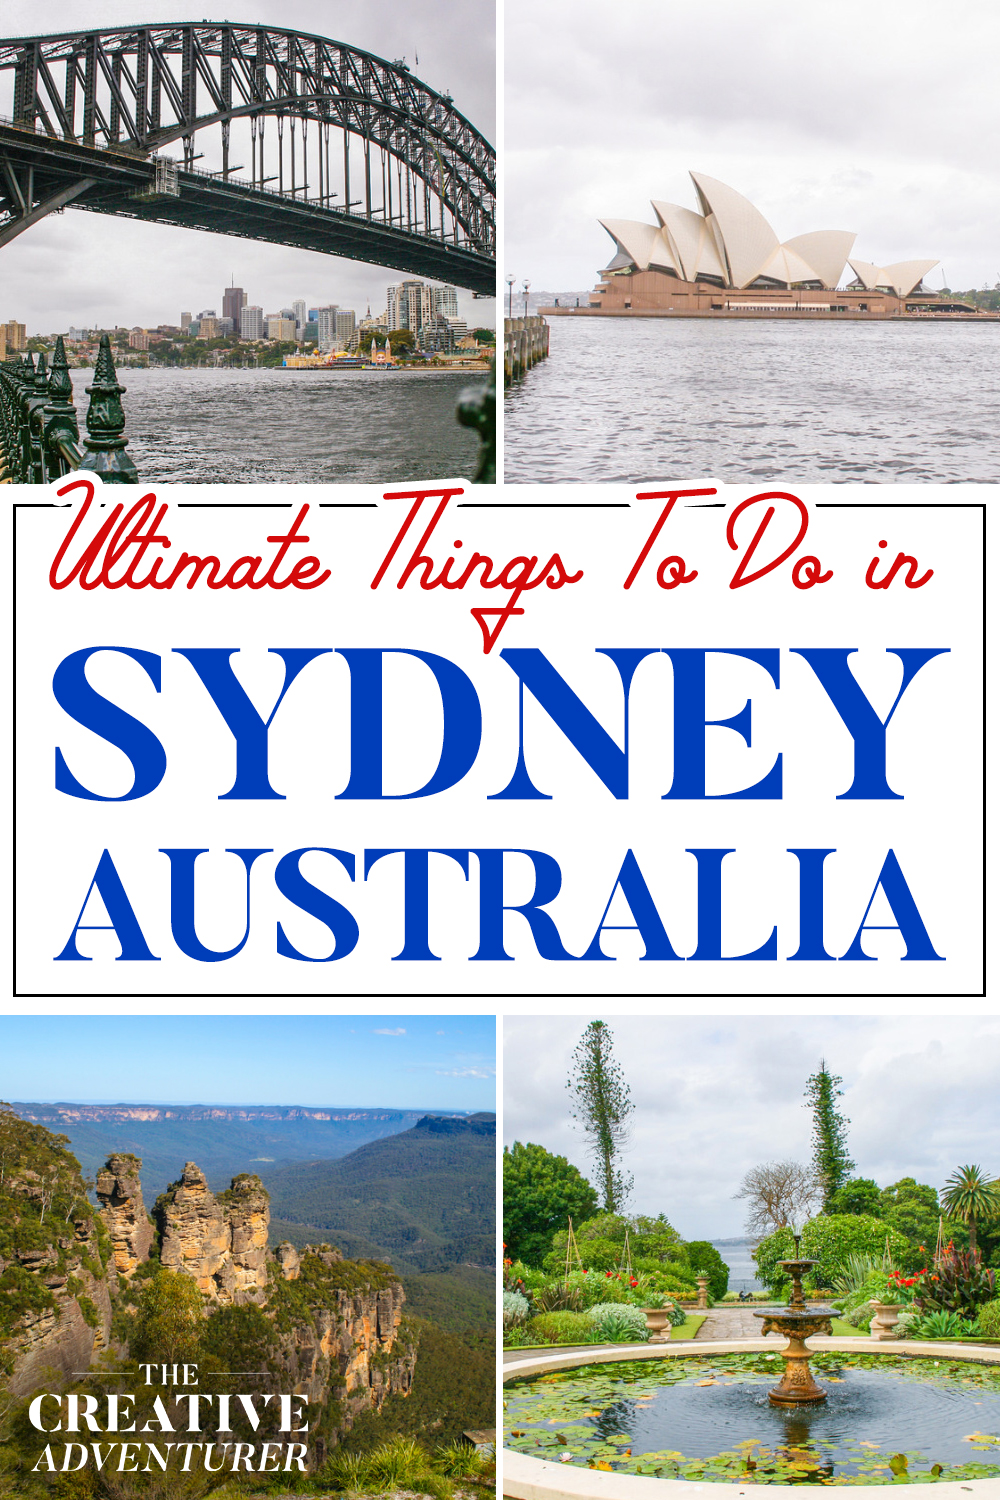 Ultimate Things To Do in Sydney Australia